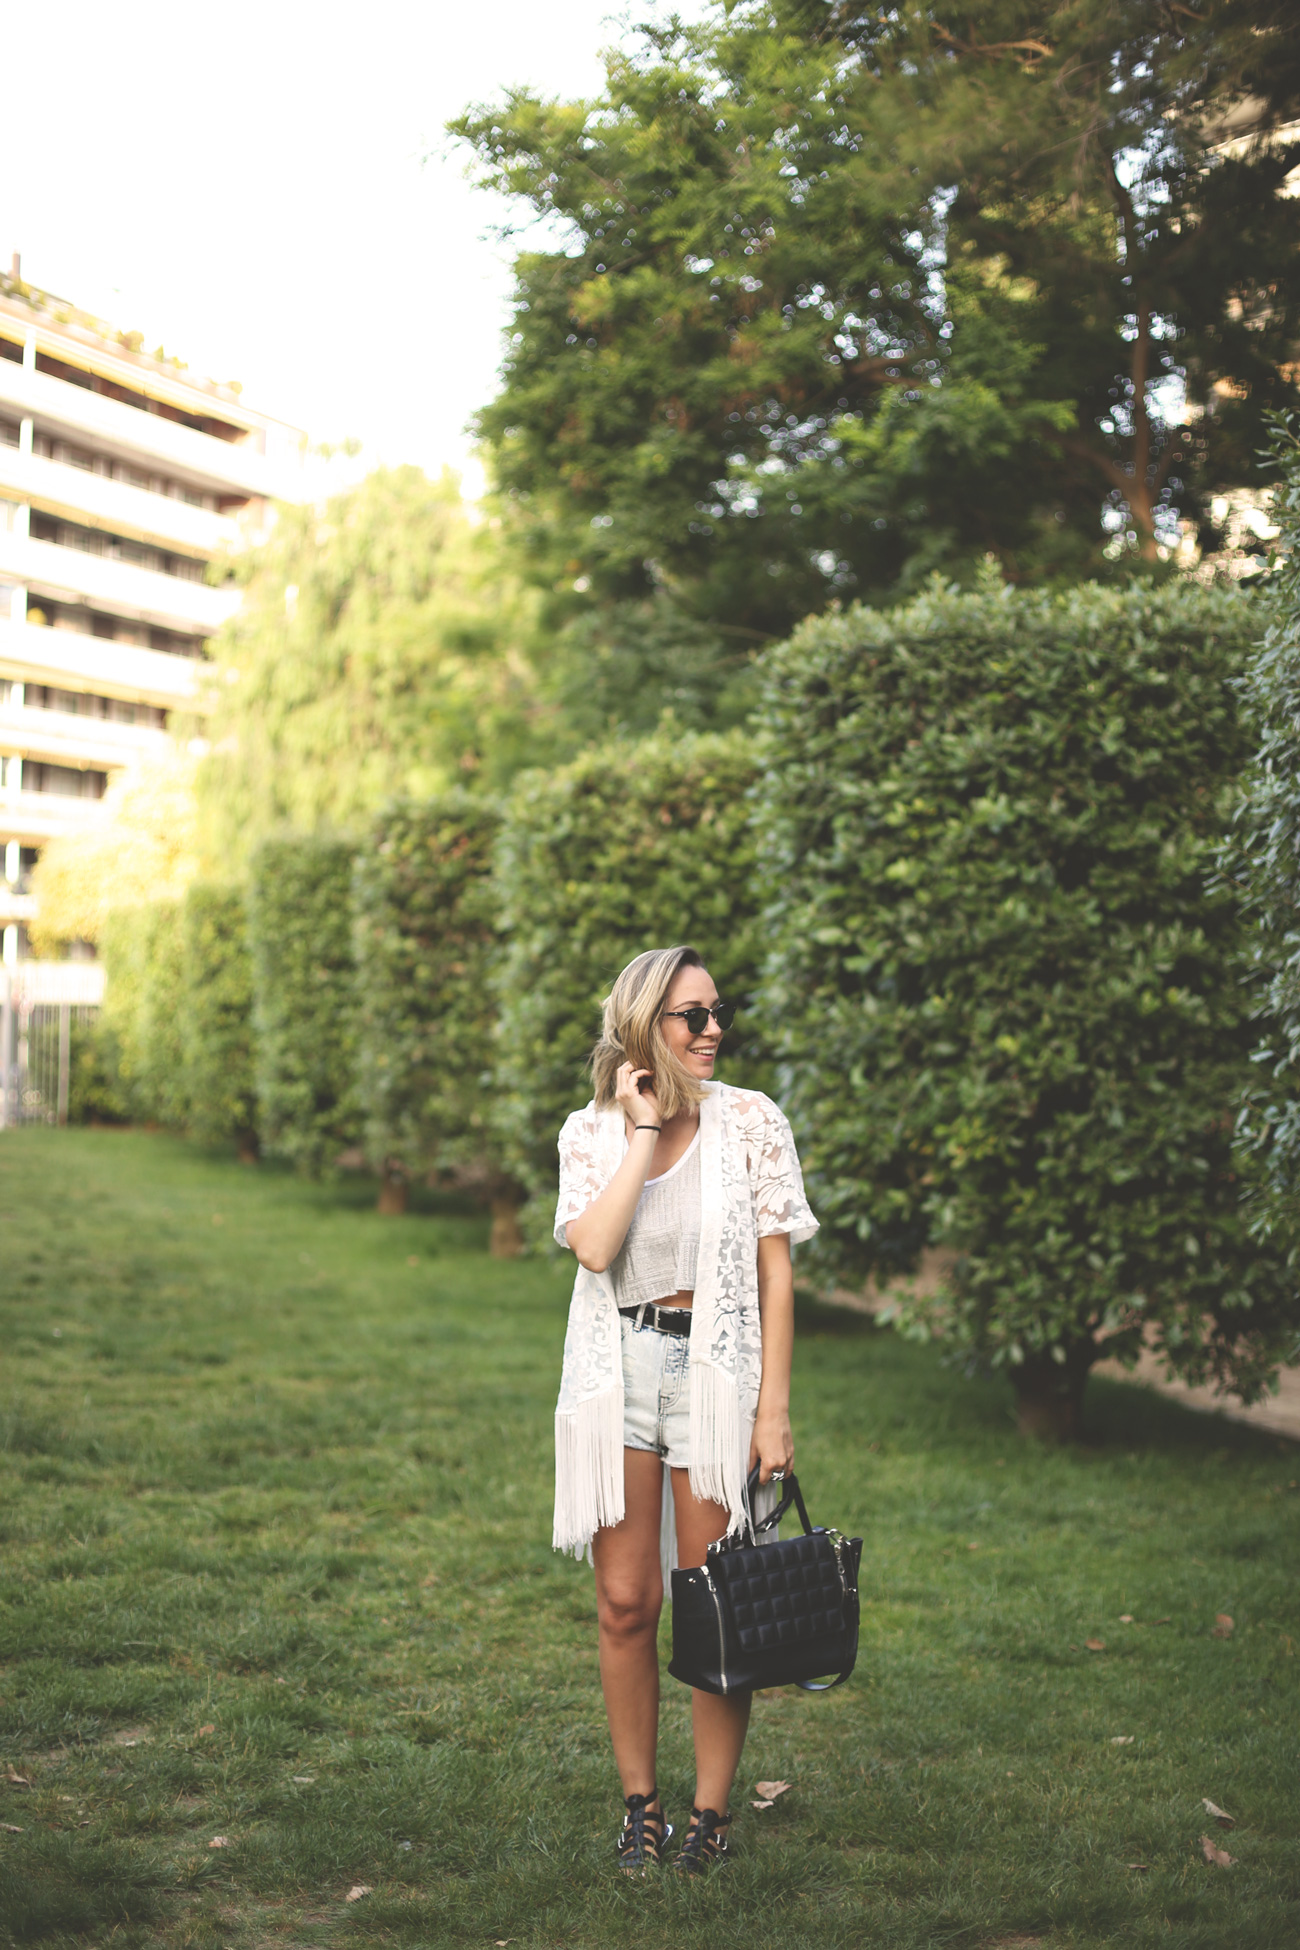 Urban look, spring outfit, fringed, ripped shorts, high waist, silver top cropped top, sandals, diechmann